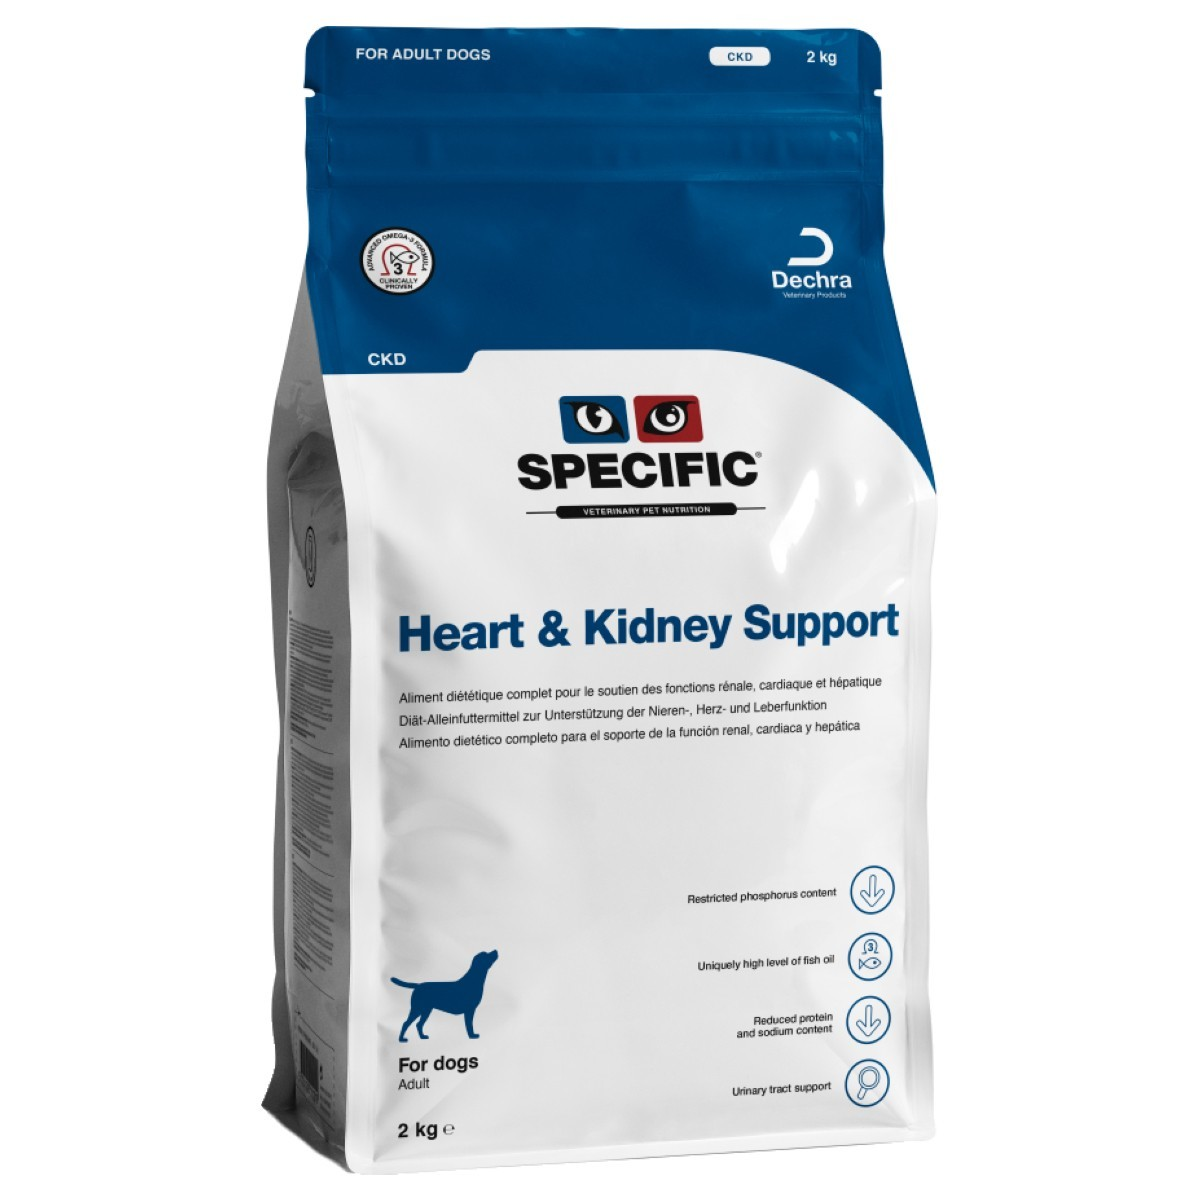 Specific CKD Heart and Kidney Support Dog Food